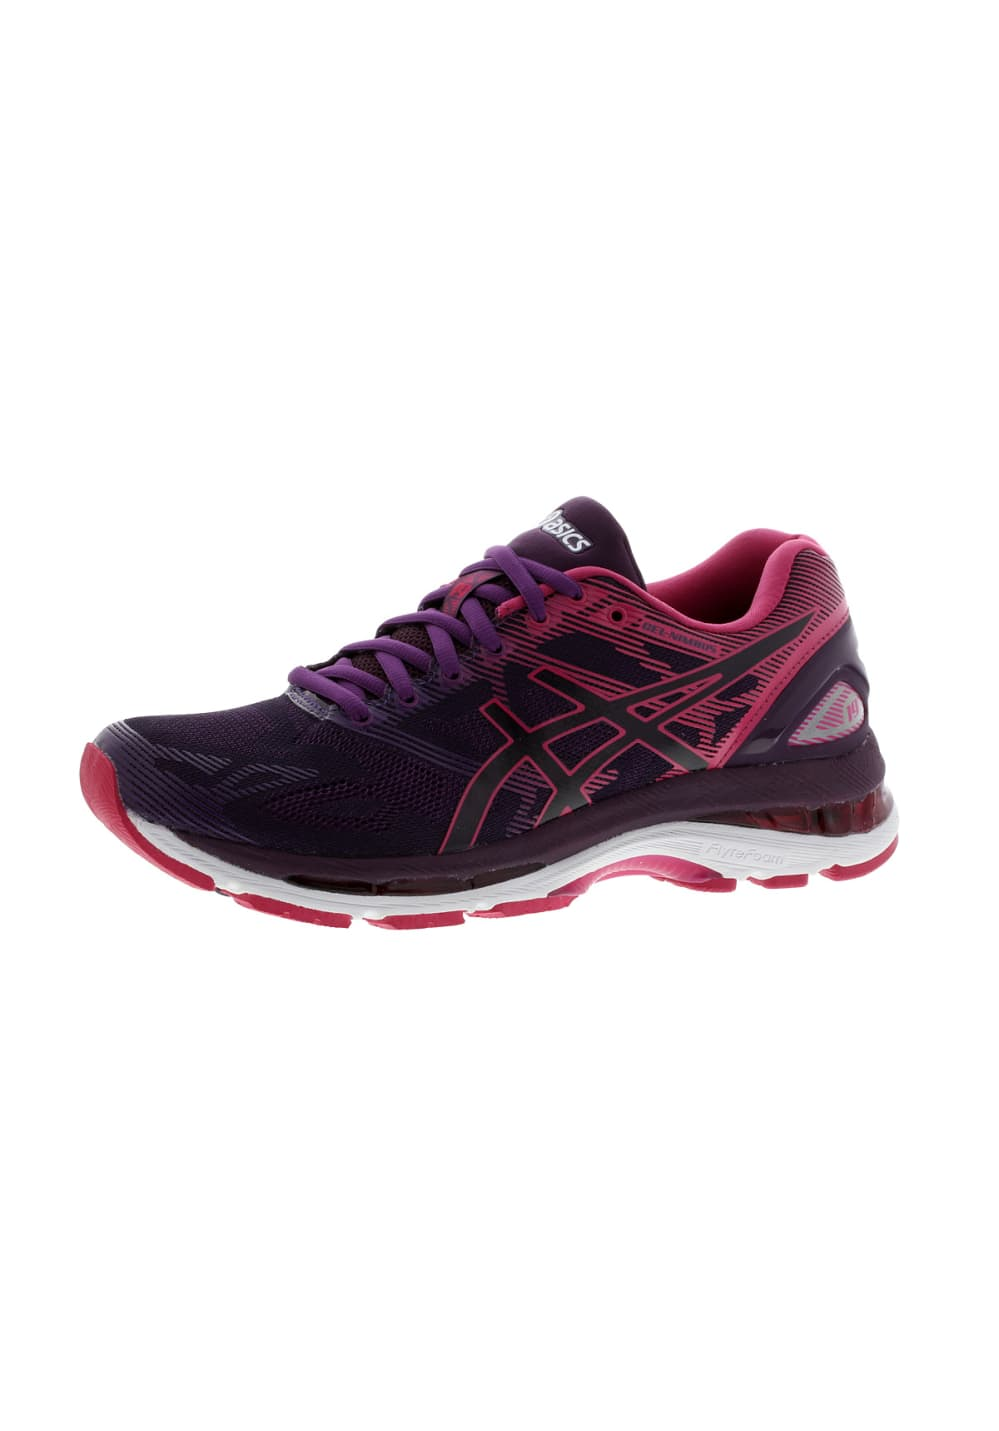 best service bc14f bbcf9 ASICS GEL-Nimbus 19 - Running shoes for Women - Purple